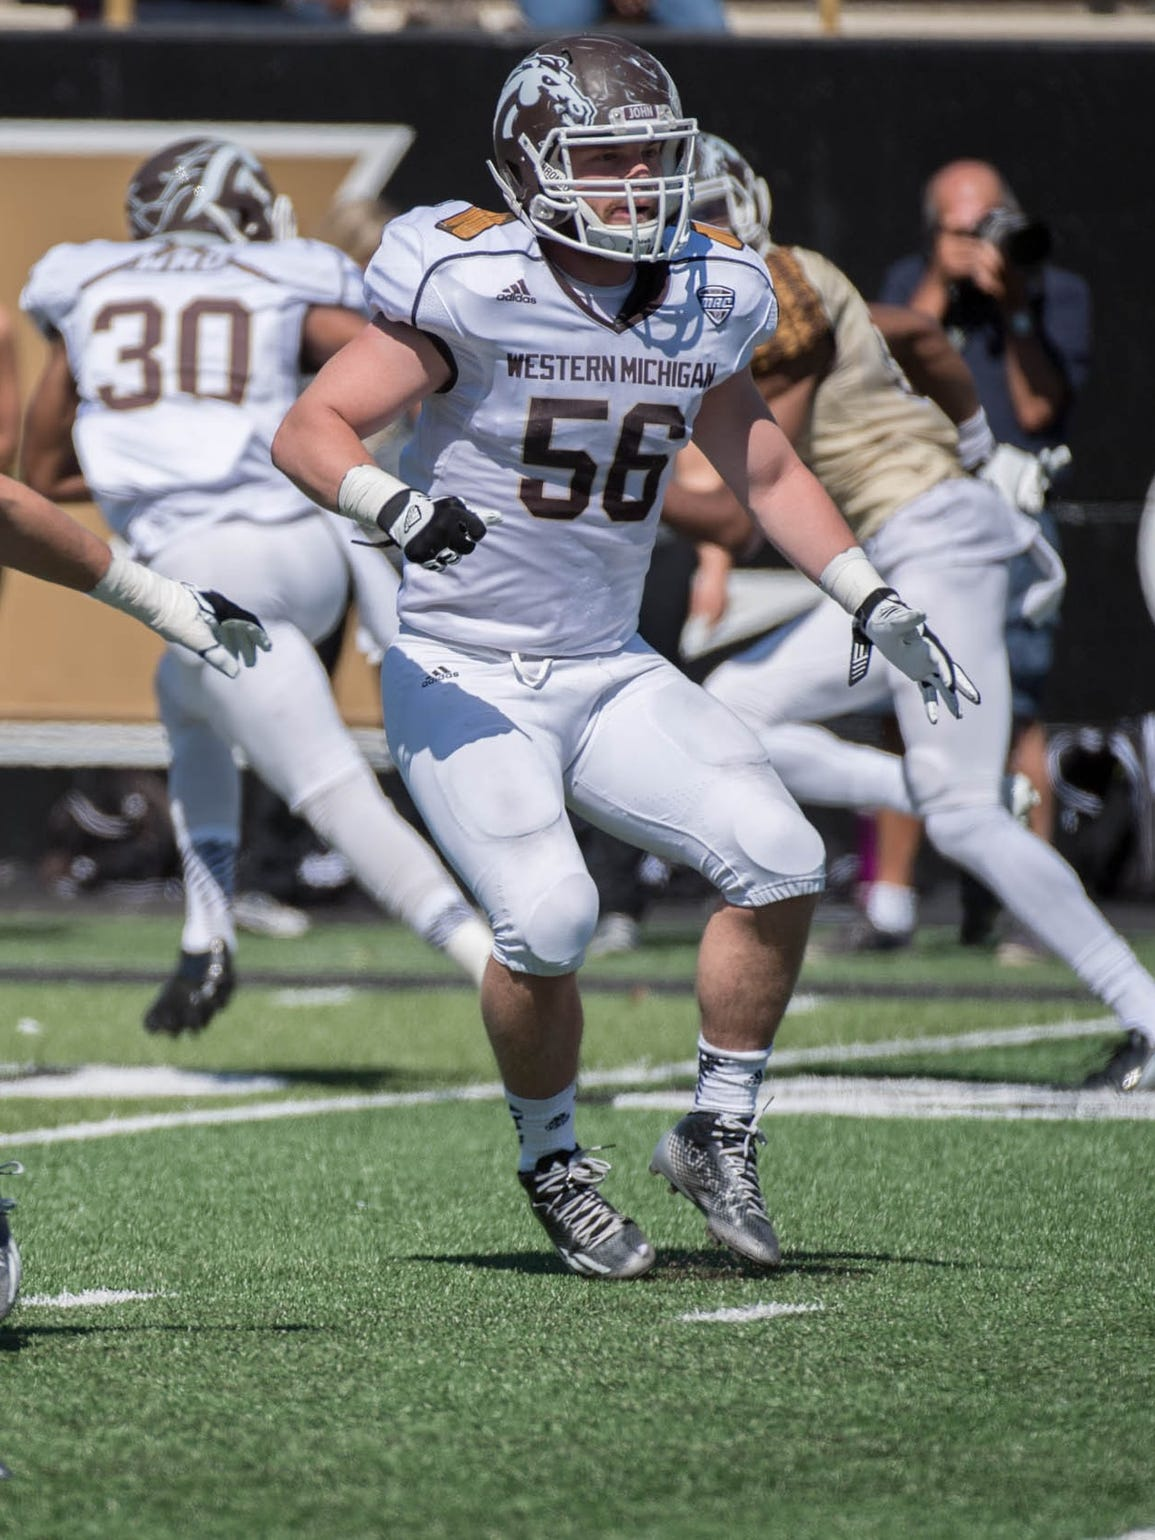 WMU's Kasey Carson (56) during the 2016 spring game.